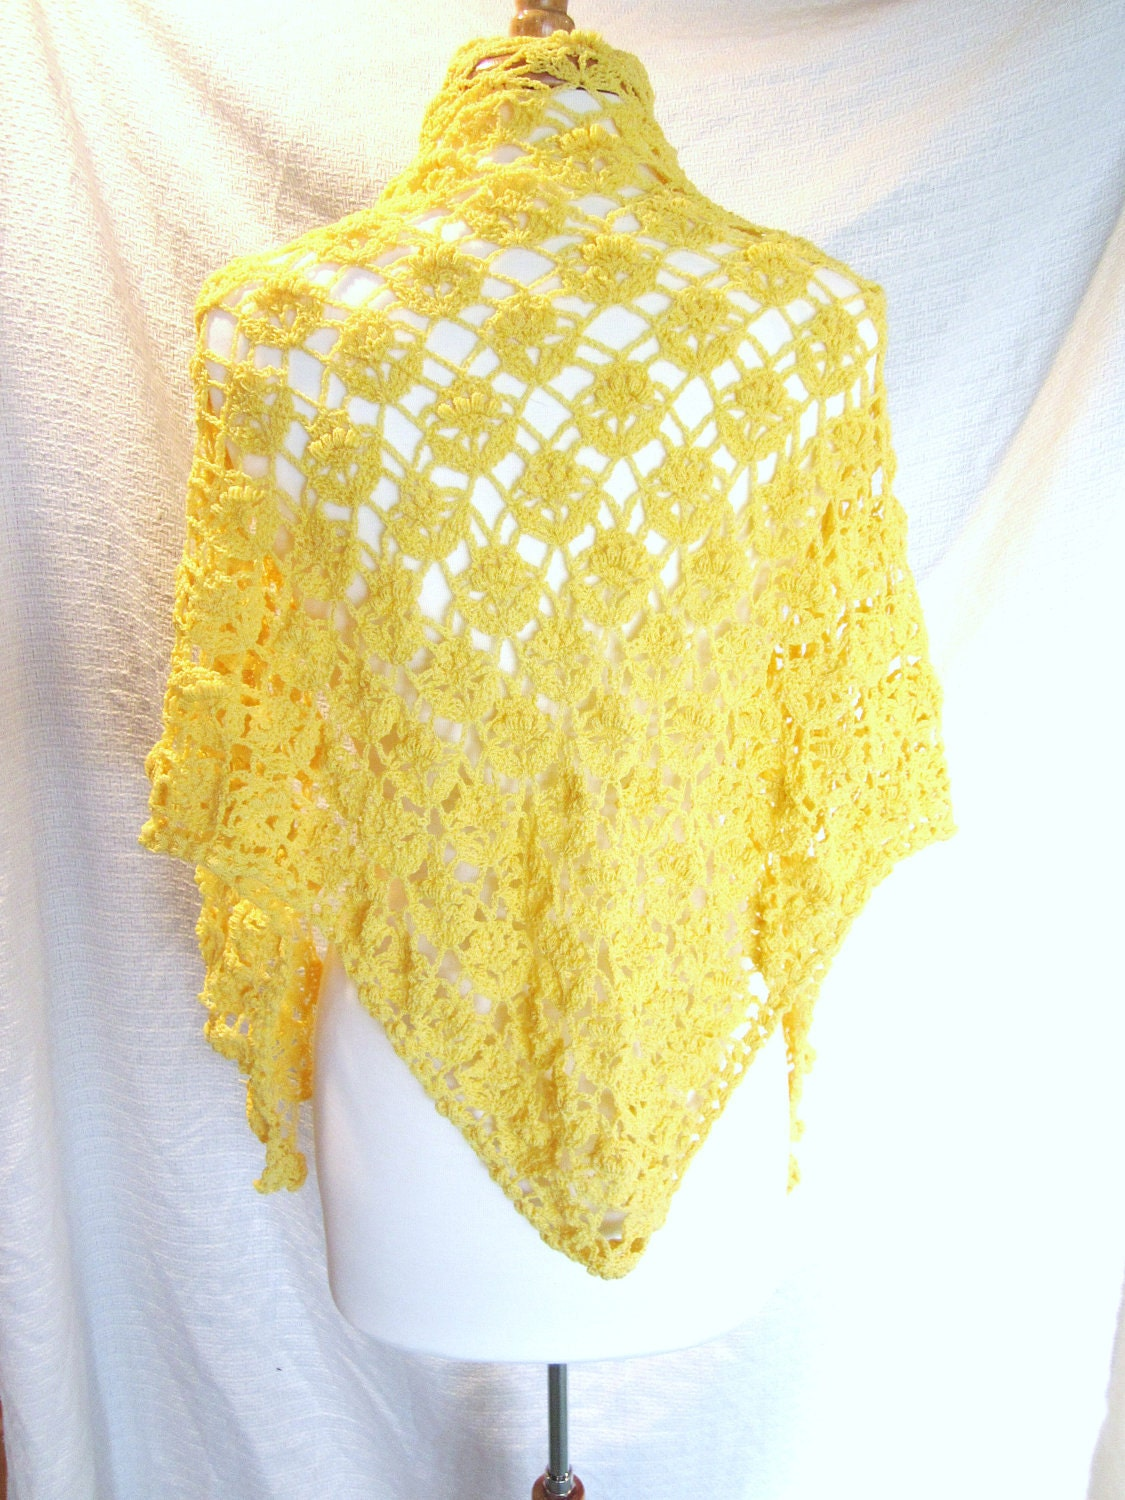 Lace triangle shawl crochet pattern squareone for crochet lacey pattern shawl thread free patterns for crochet bankloansurffo Image collections